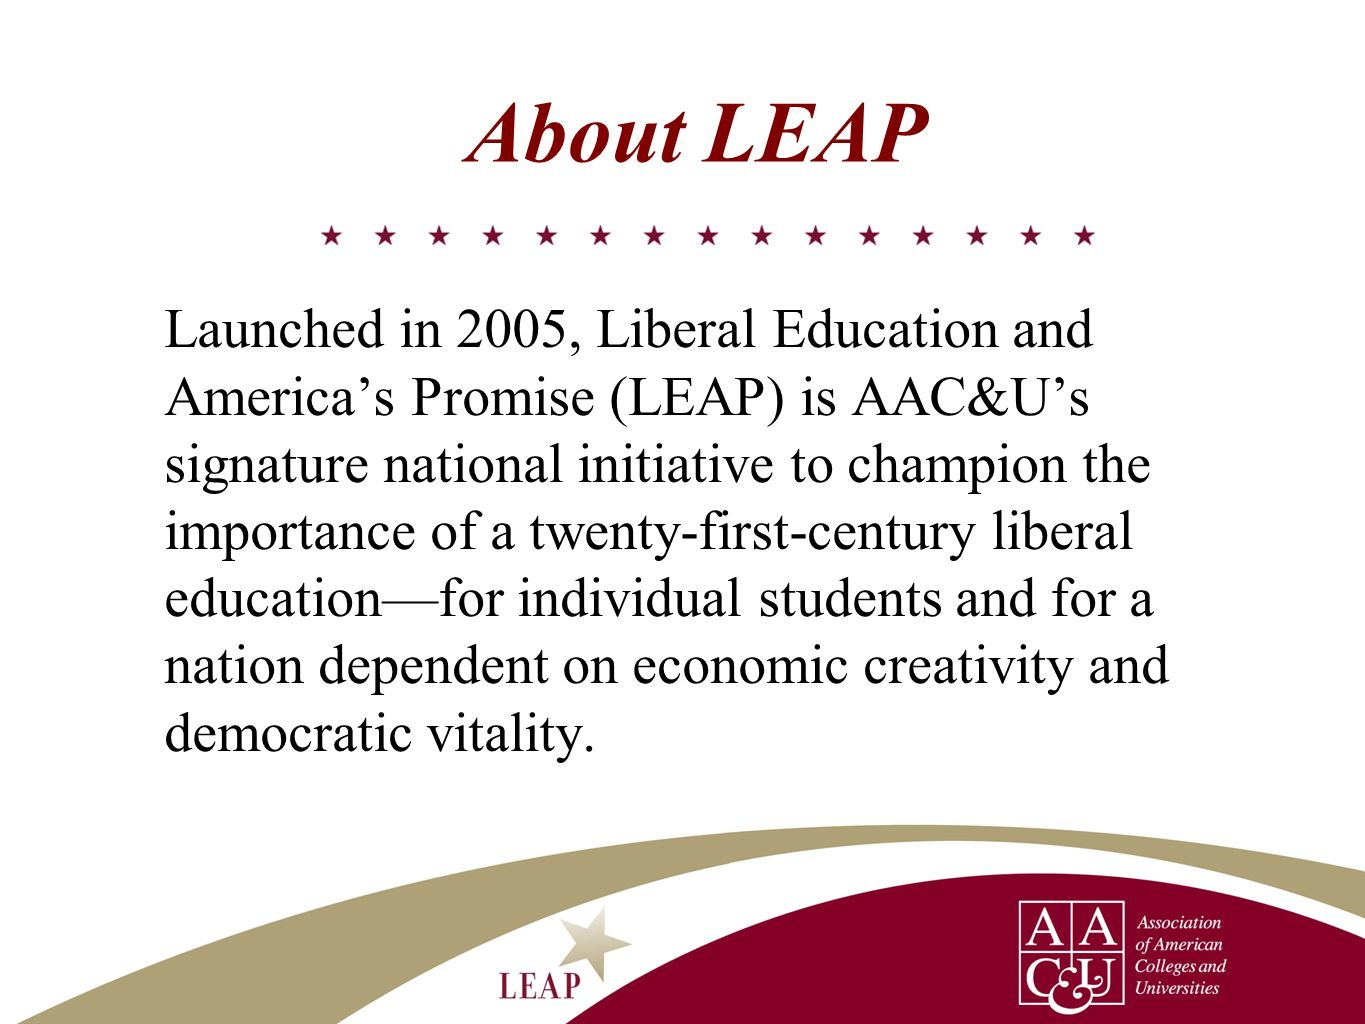 About LEAP Launched in 2005, Liberal Education and Americas Promise (LEAP) is AAC&Us signature national initiative to champion the importance of a twe